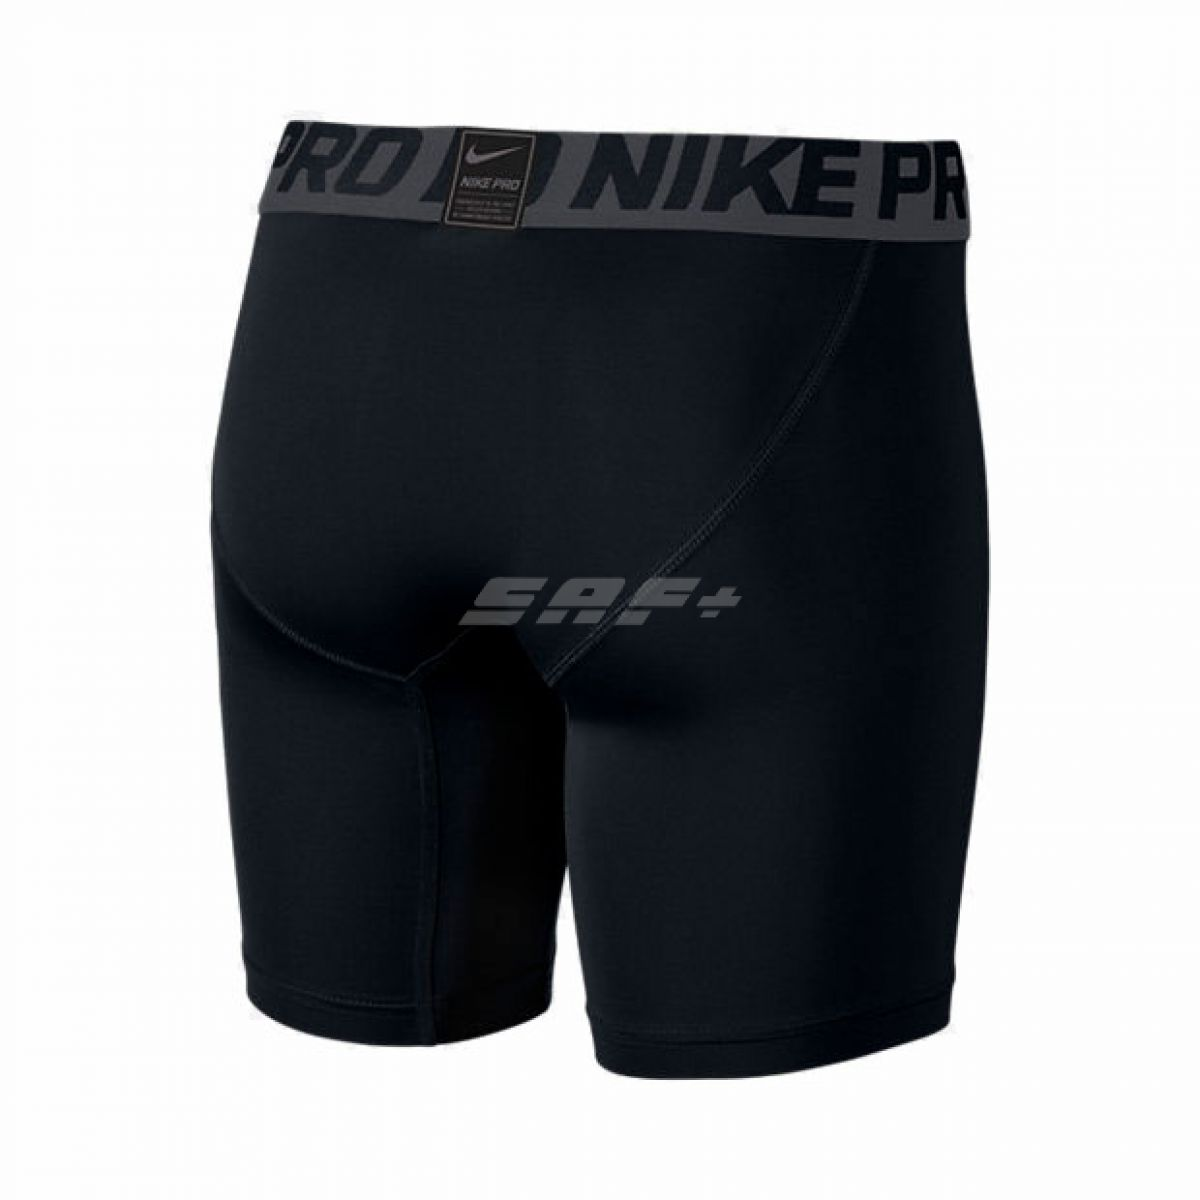 БЕЛЬЕ NIKE PRO ТРУСЫ COOL COMPRESSION JR